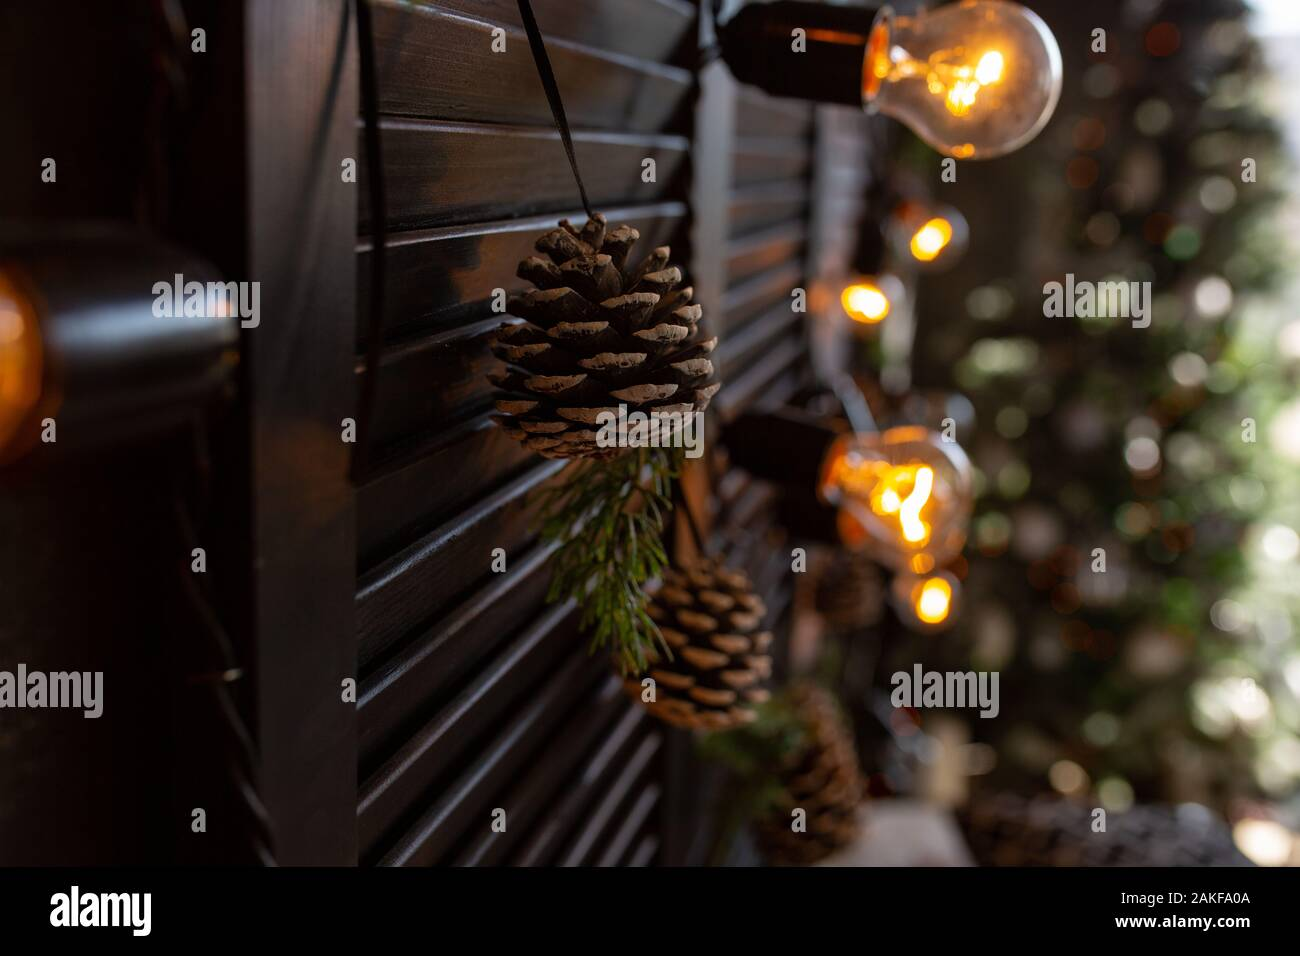 Christmas Decor Bedroom In Dark Colors With Large Bed The Interior Is Decorated With Garlands And A Small Christmas Tree Modern Style Cozy Christm Stock Photo Alamy